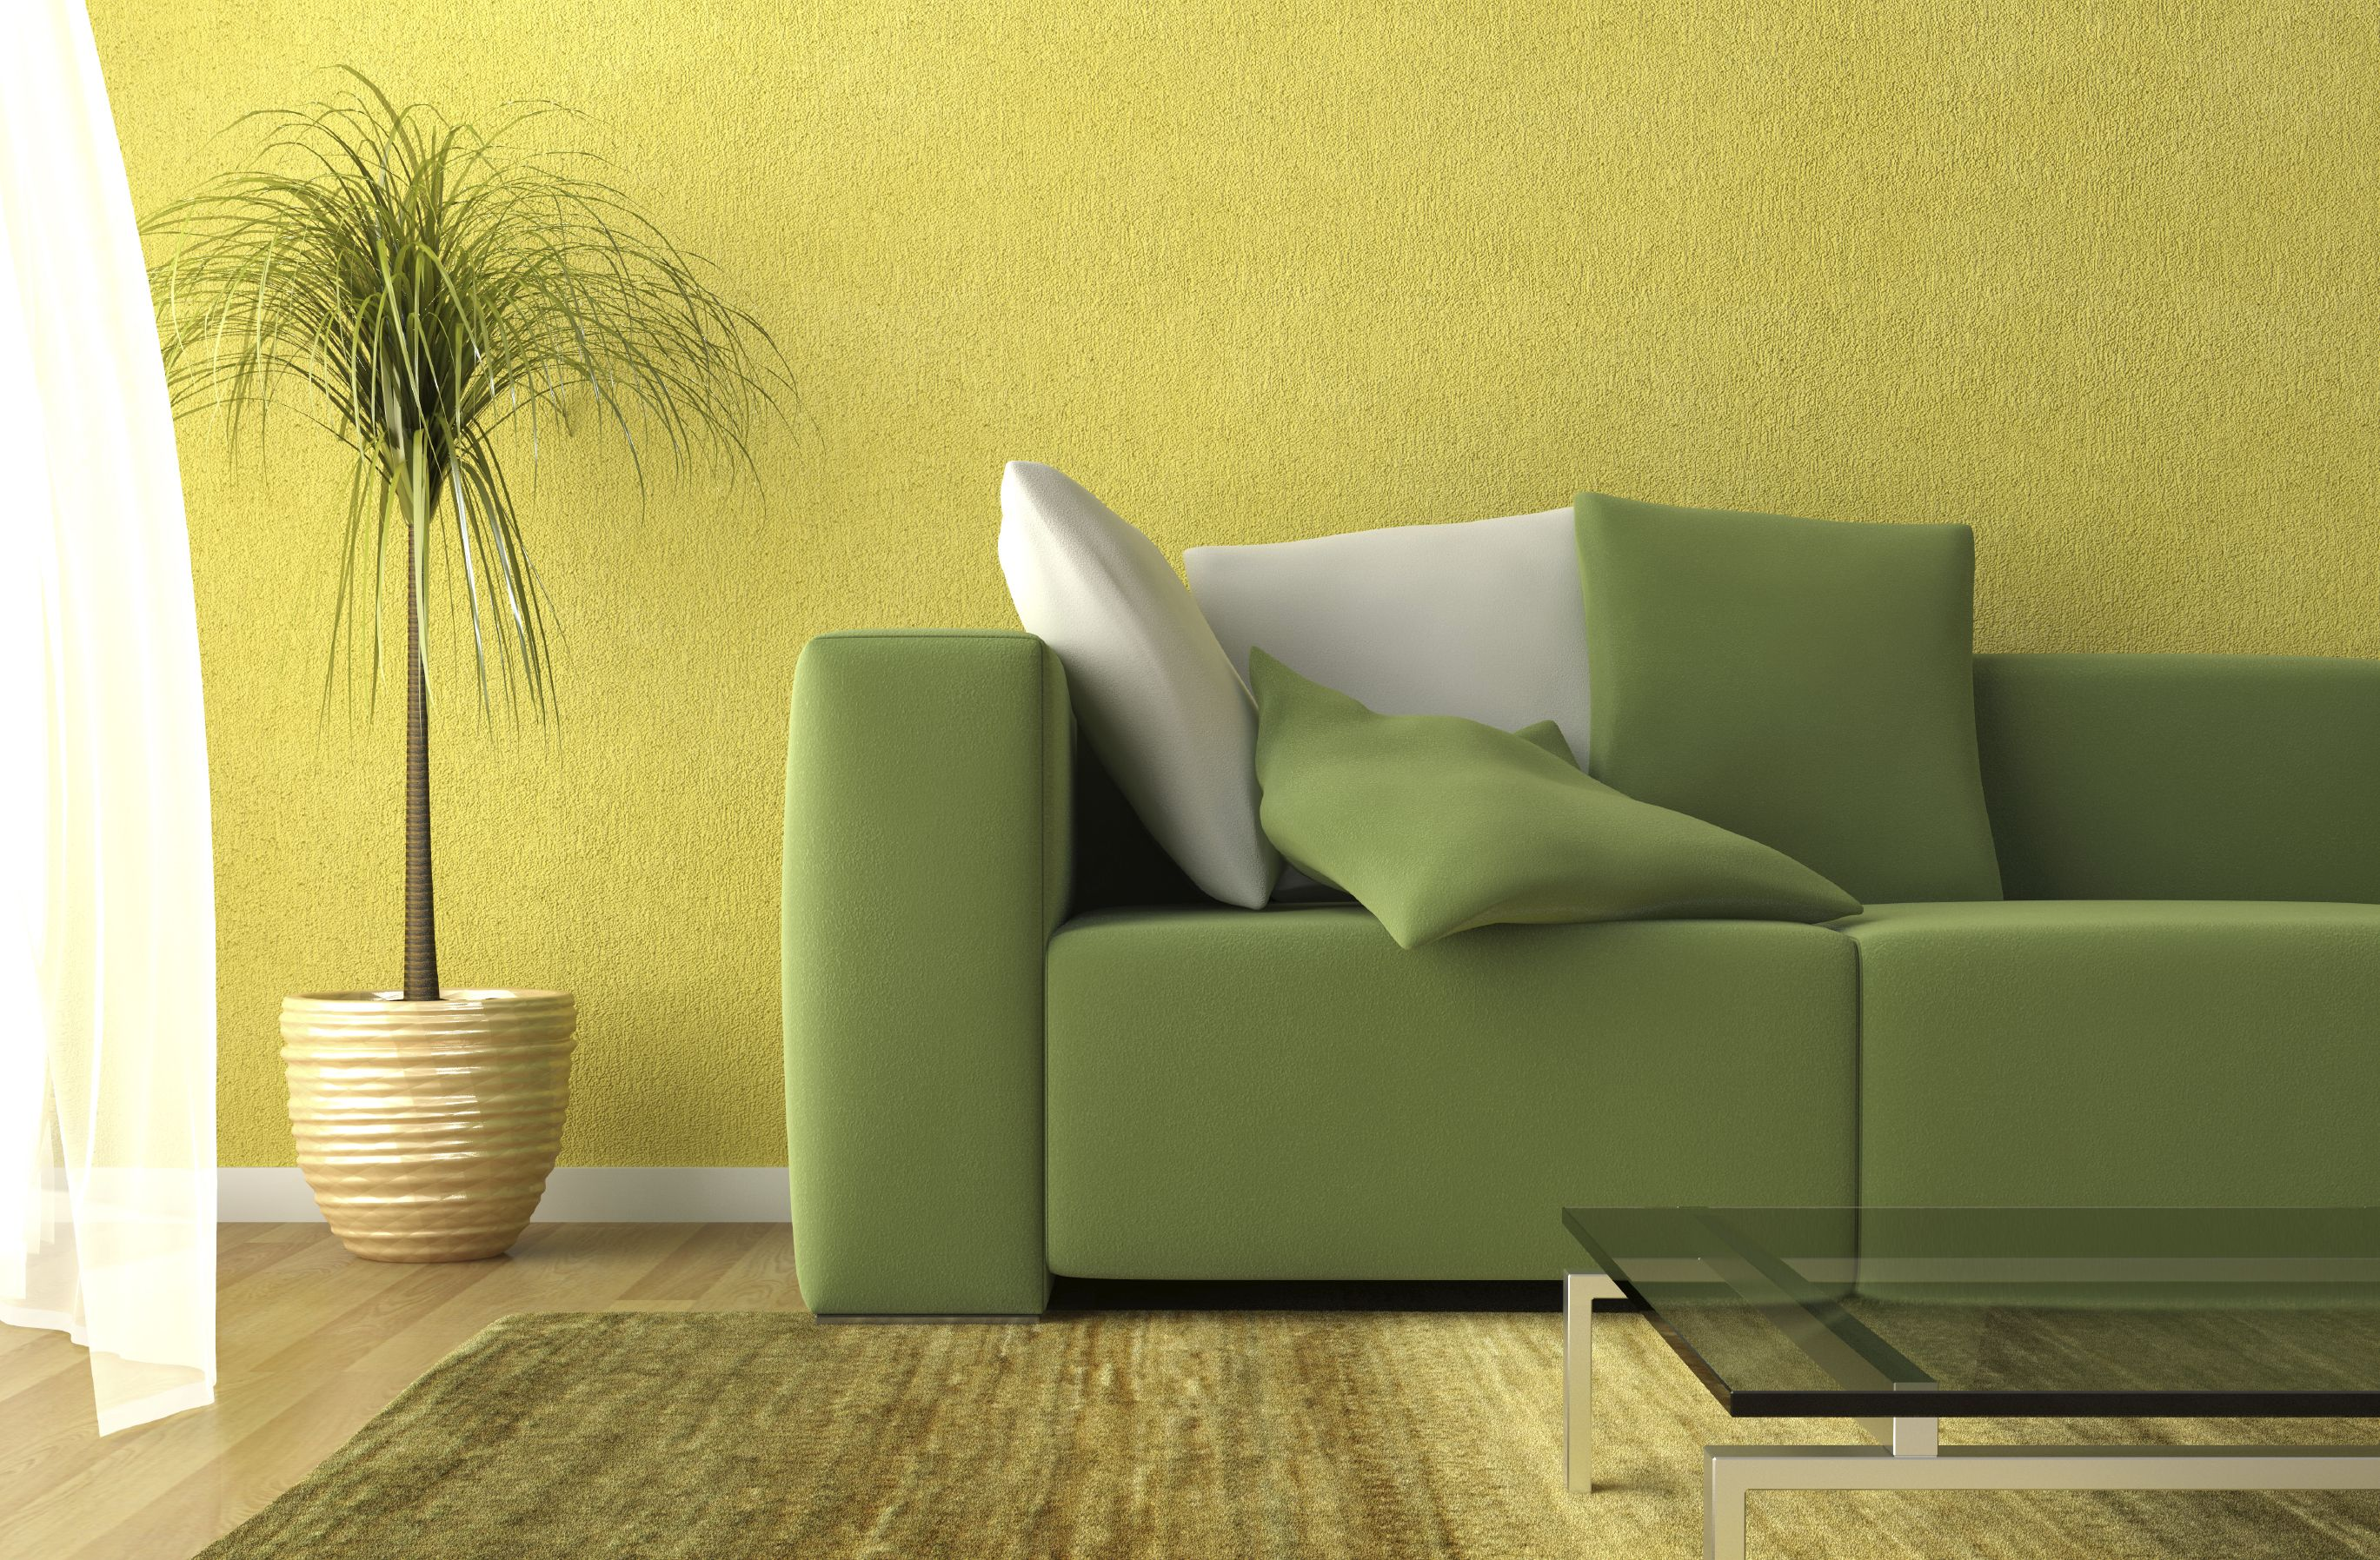 technically this wall color is a shade of yellow but the green